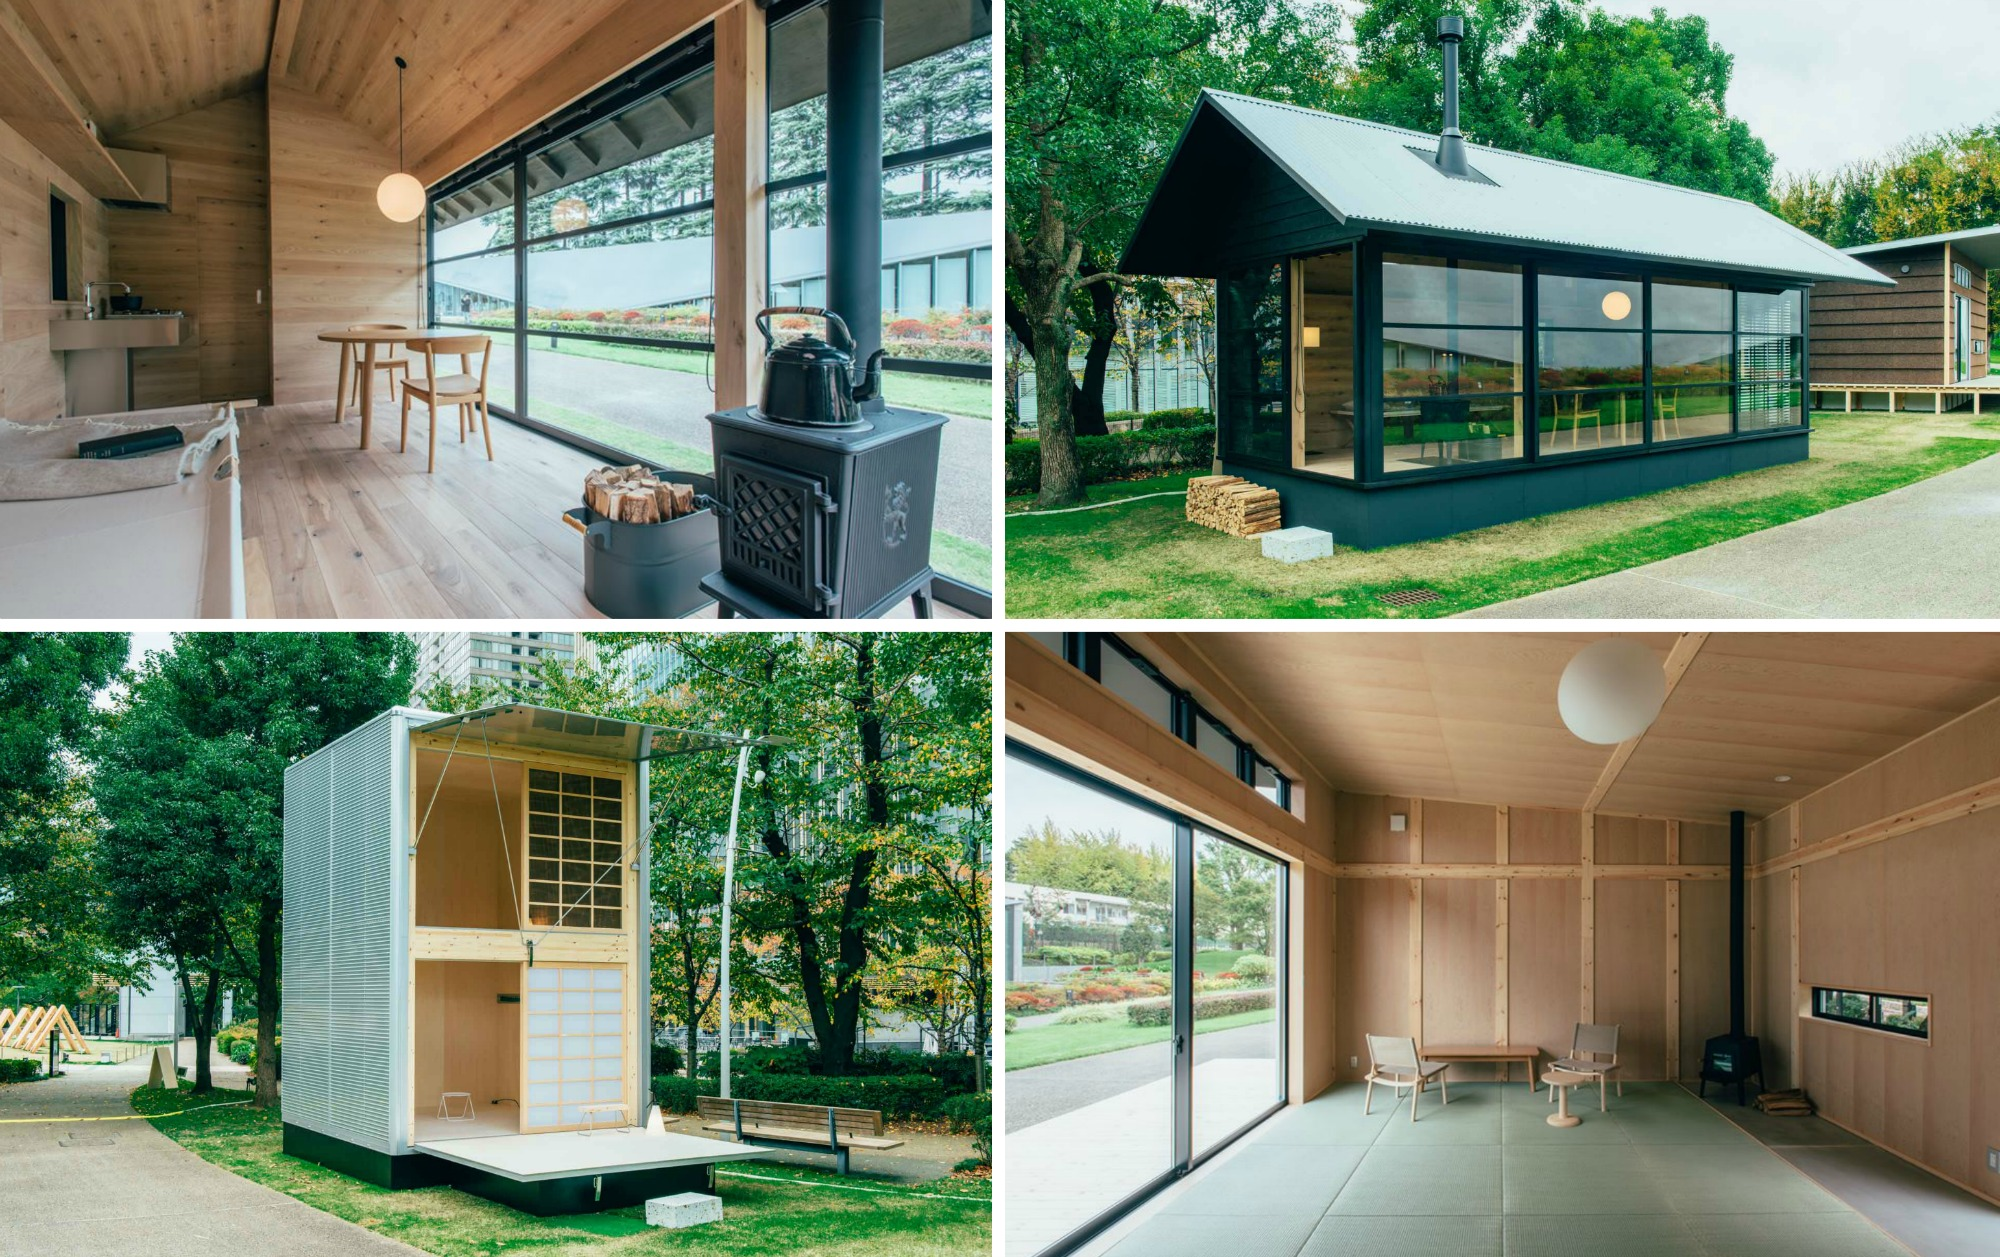 Tiny House 'MUJI Huts' Will Start At Just $25,000